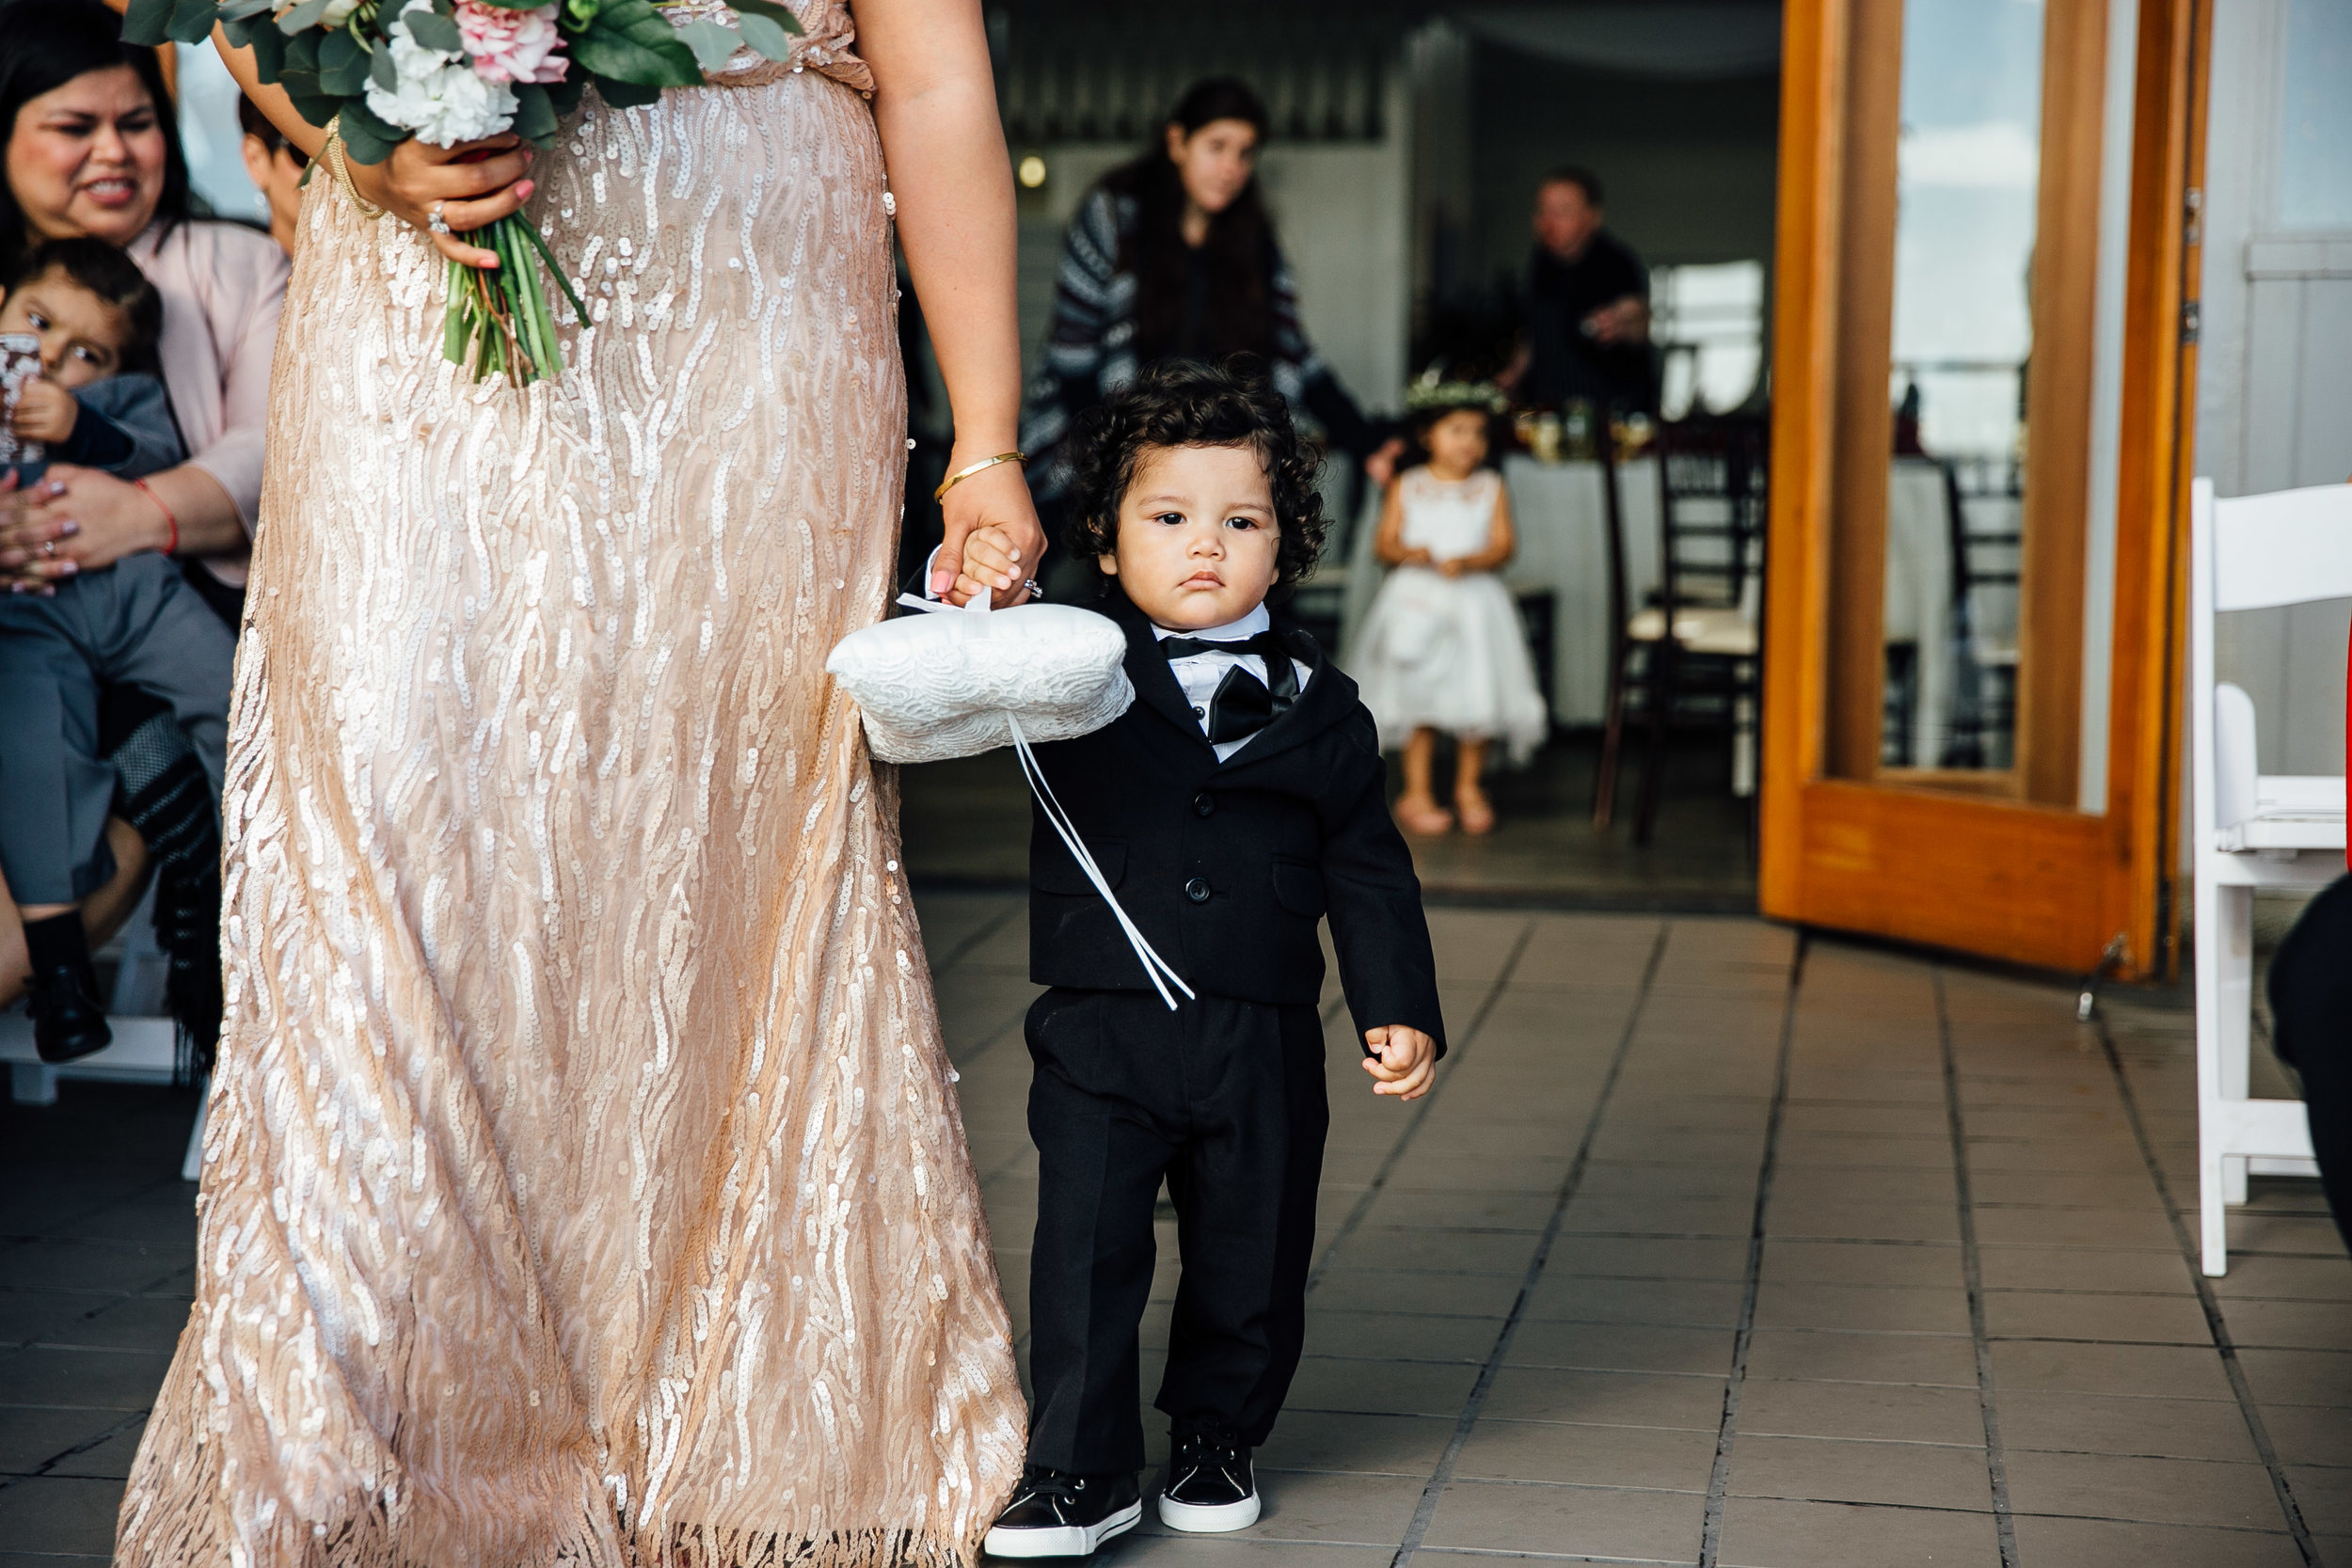 Mayra-Brandon-Wedding-Malibu_125.jpg